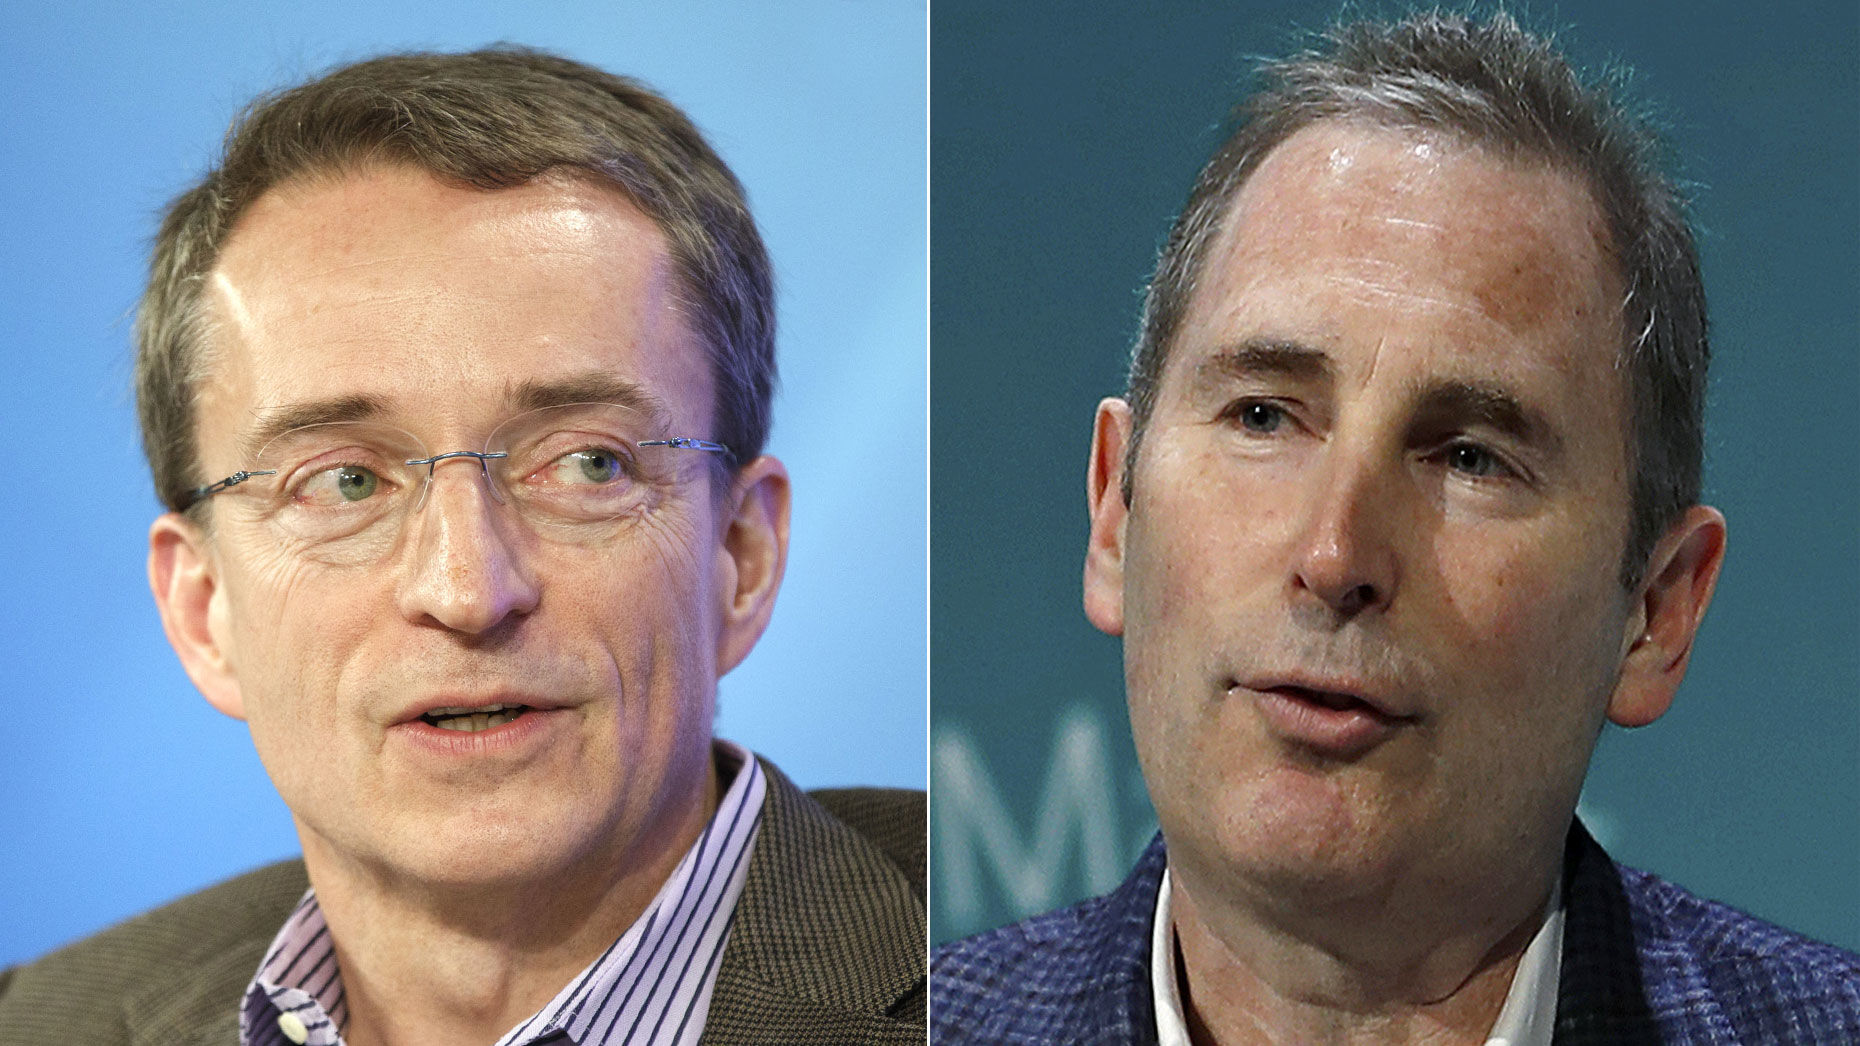 VMware CEO Pat Gelsinger, left, and Amazon Web Services CEO Andy Jassy. Photos by Bloomberg